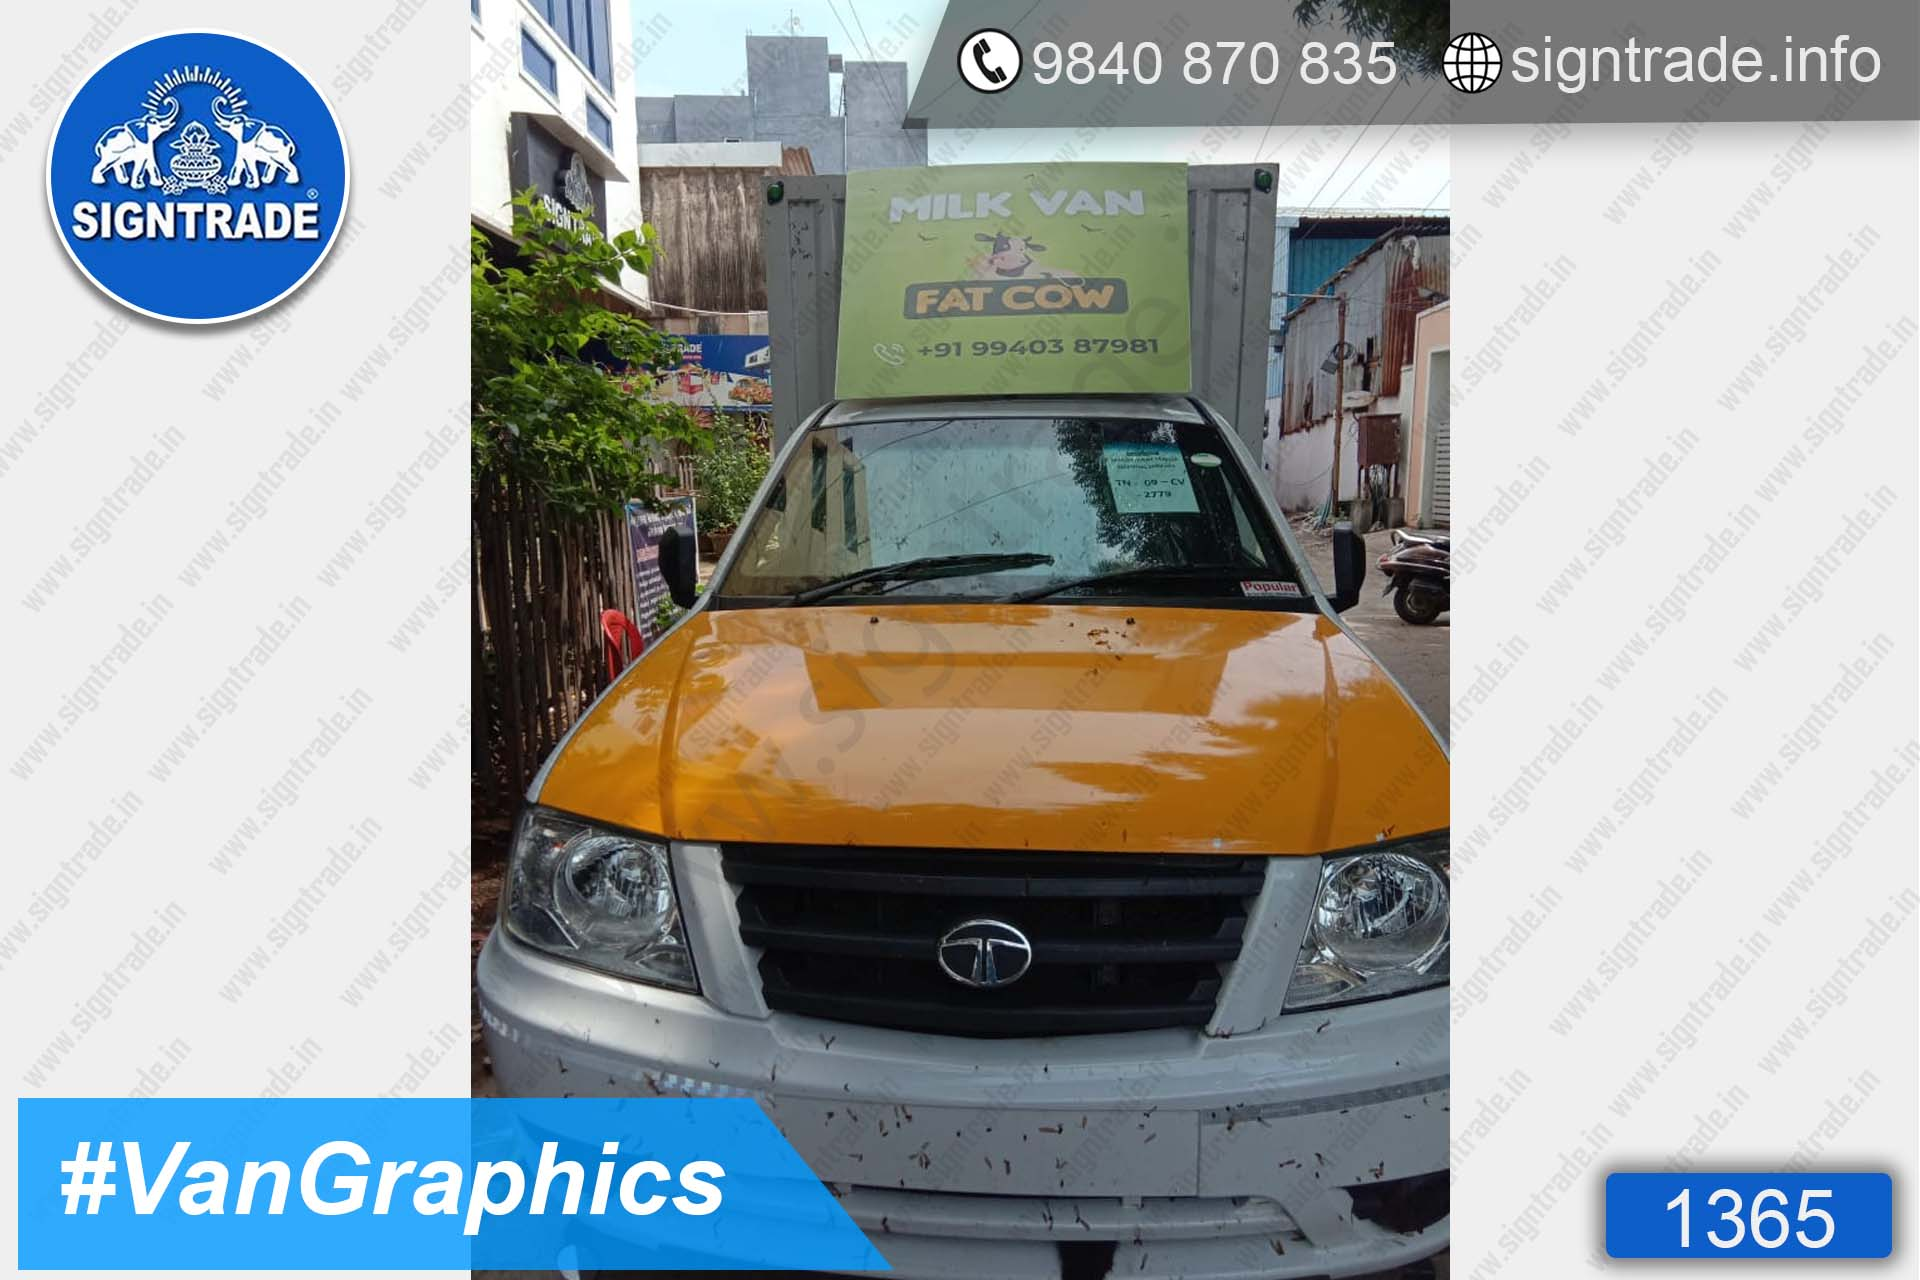 1365, Vehicle Graphics, Vehicle Wrapping, Vehicle Branding, Vinyl Vehicle Branding, Van Graphics, Van Wrapping, Van Branding, Vinyl Van Branding, Car Graphics, Car Wrapping, Car Branding, Vinyl Car Branding, Car Stickers, Van Car Stickers